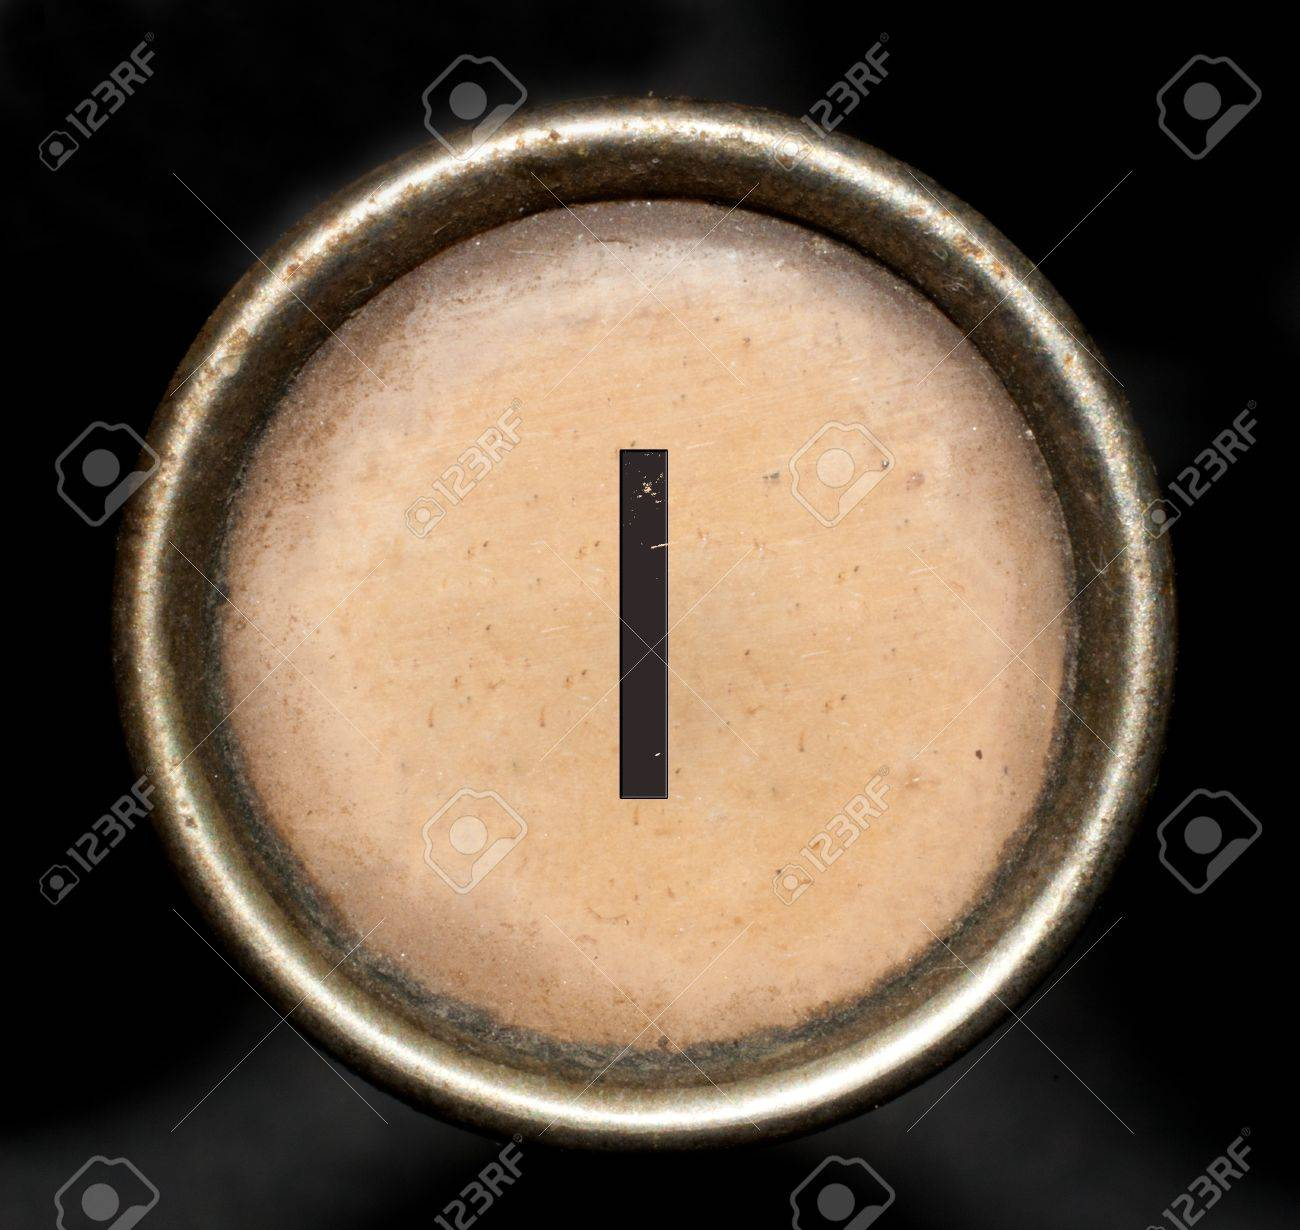 Font consisting of keys of a typewriter Stock Photo - 12833693